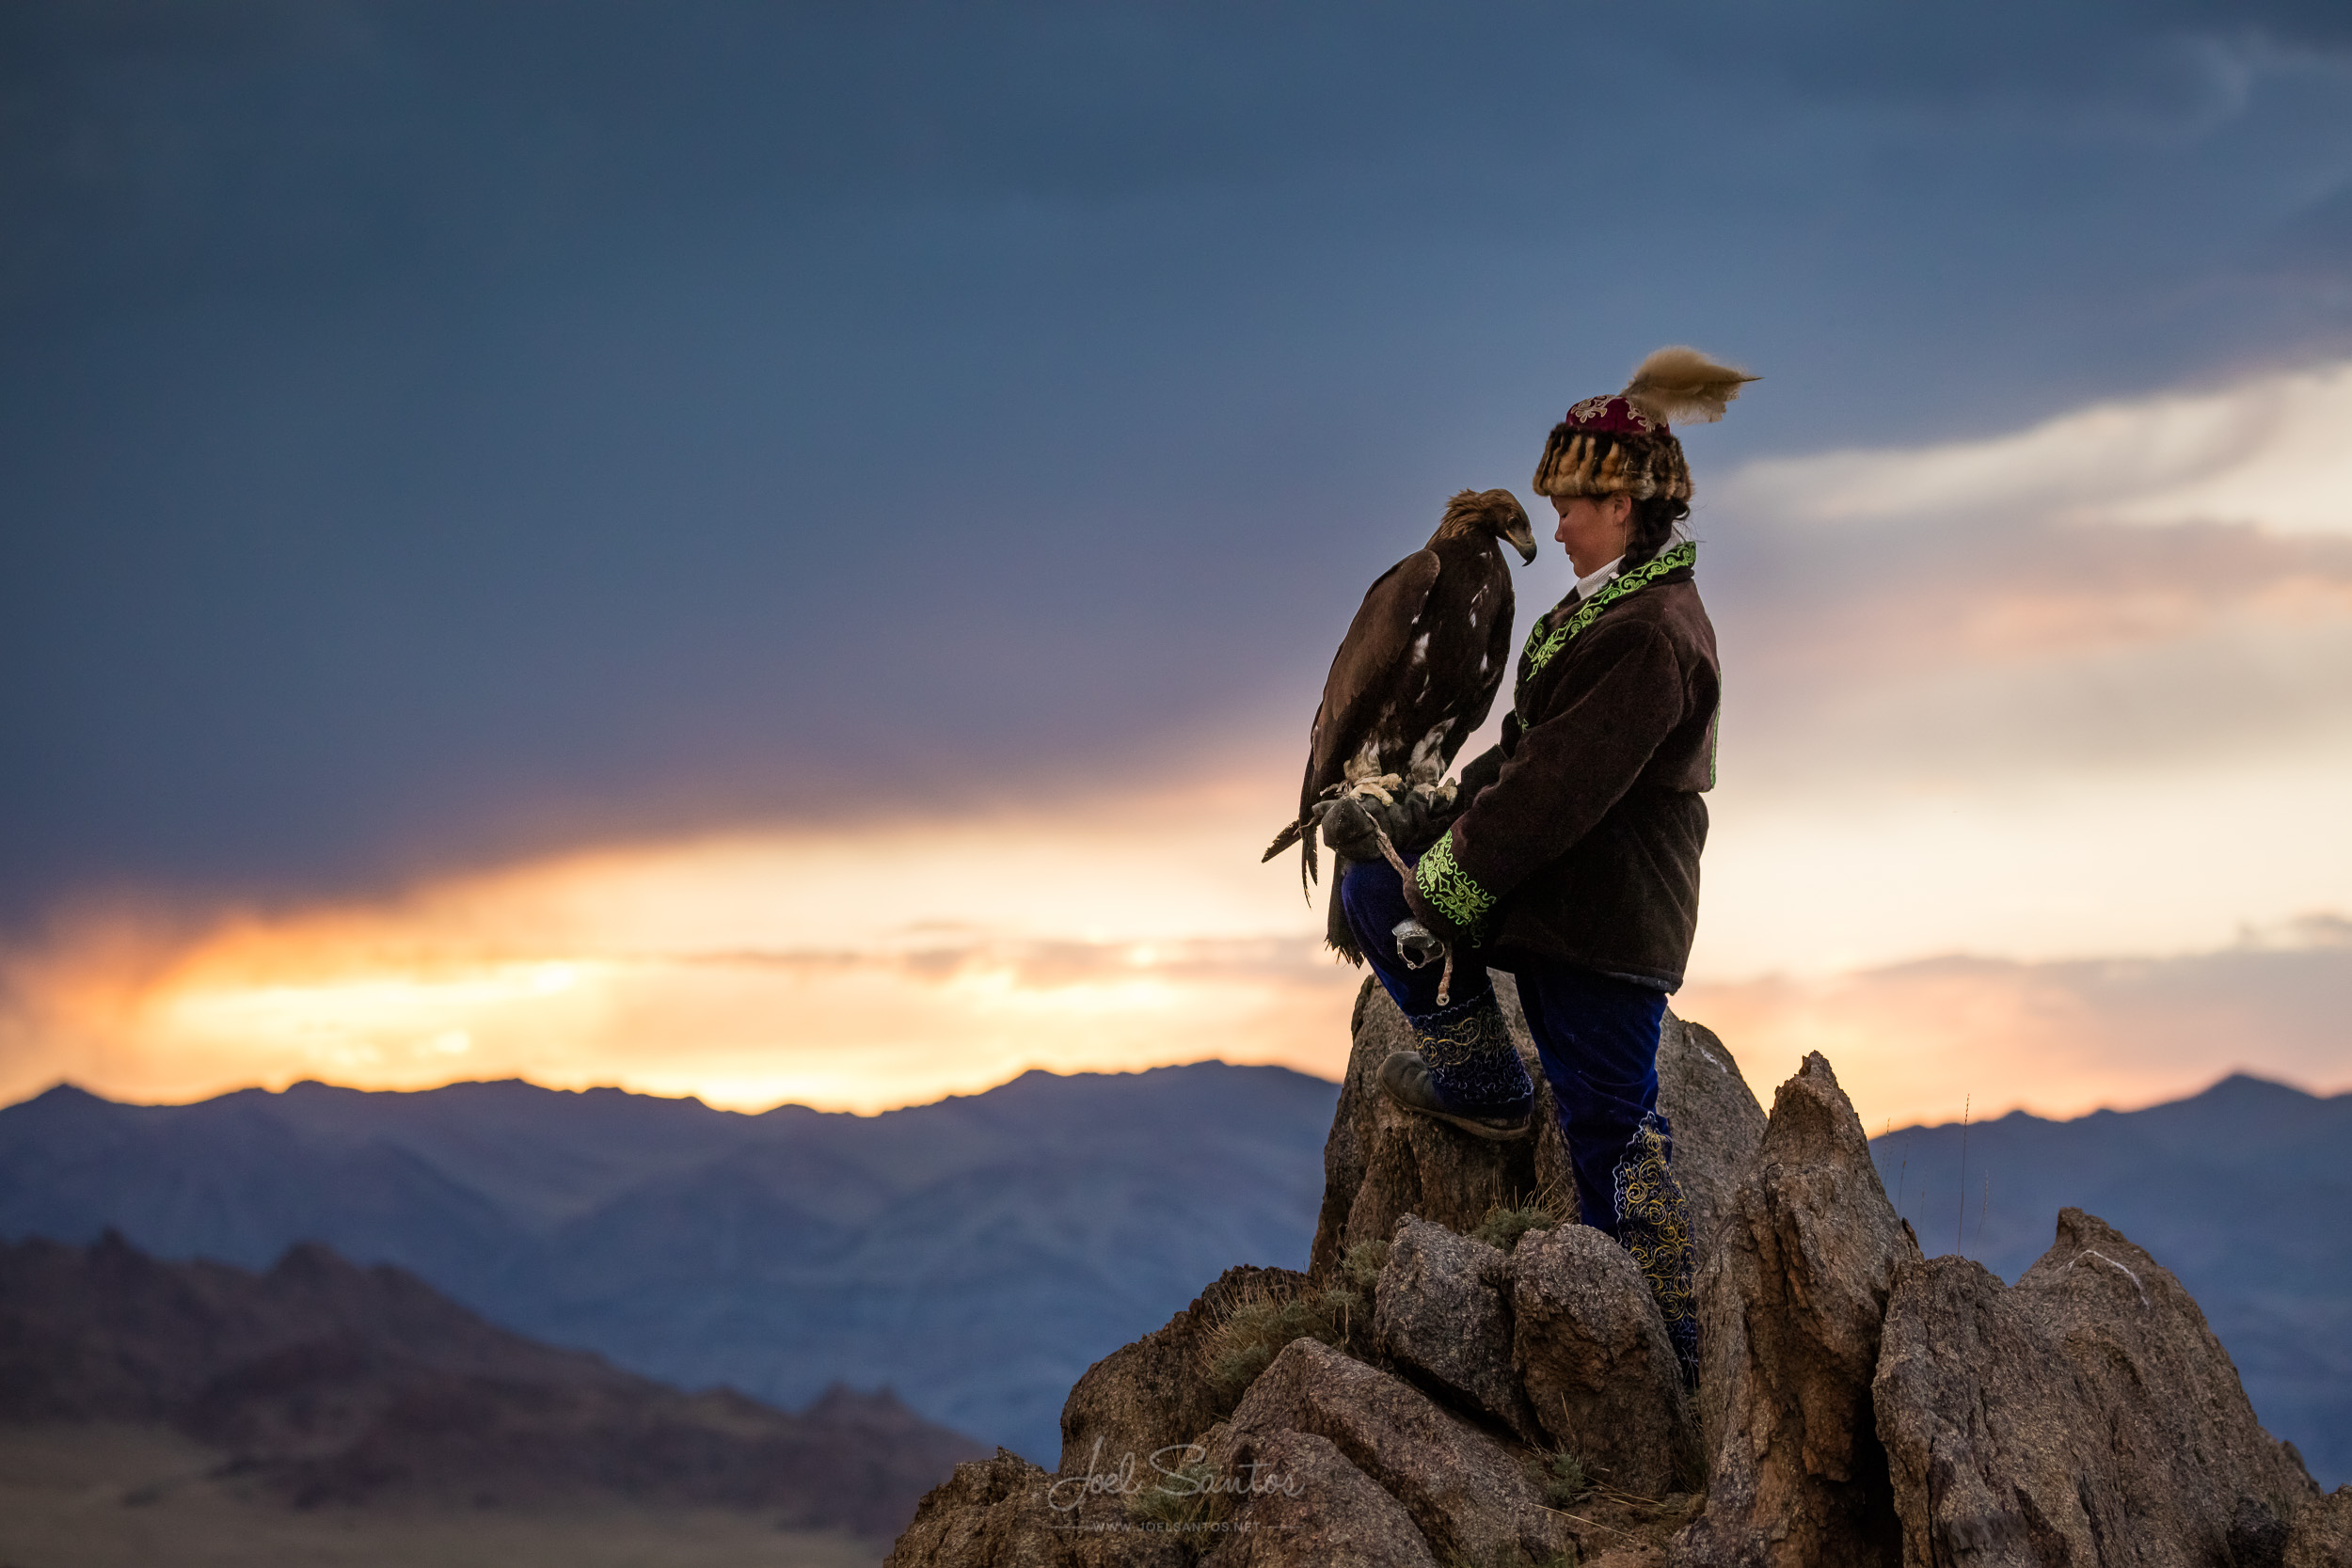 Aishol Pan at age 14, Eagle Huntress, Altai, Western Mongolia